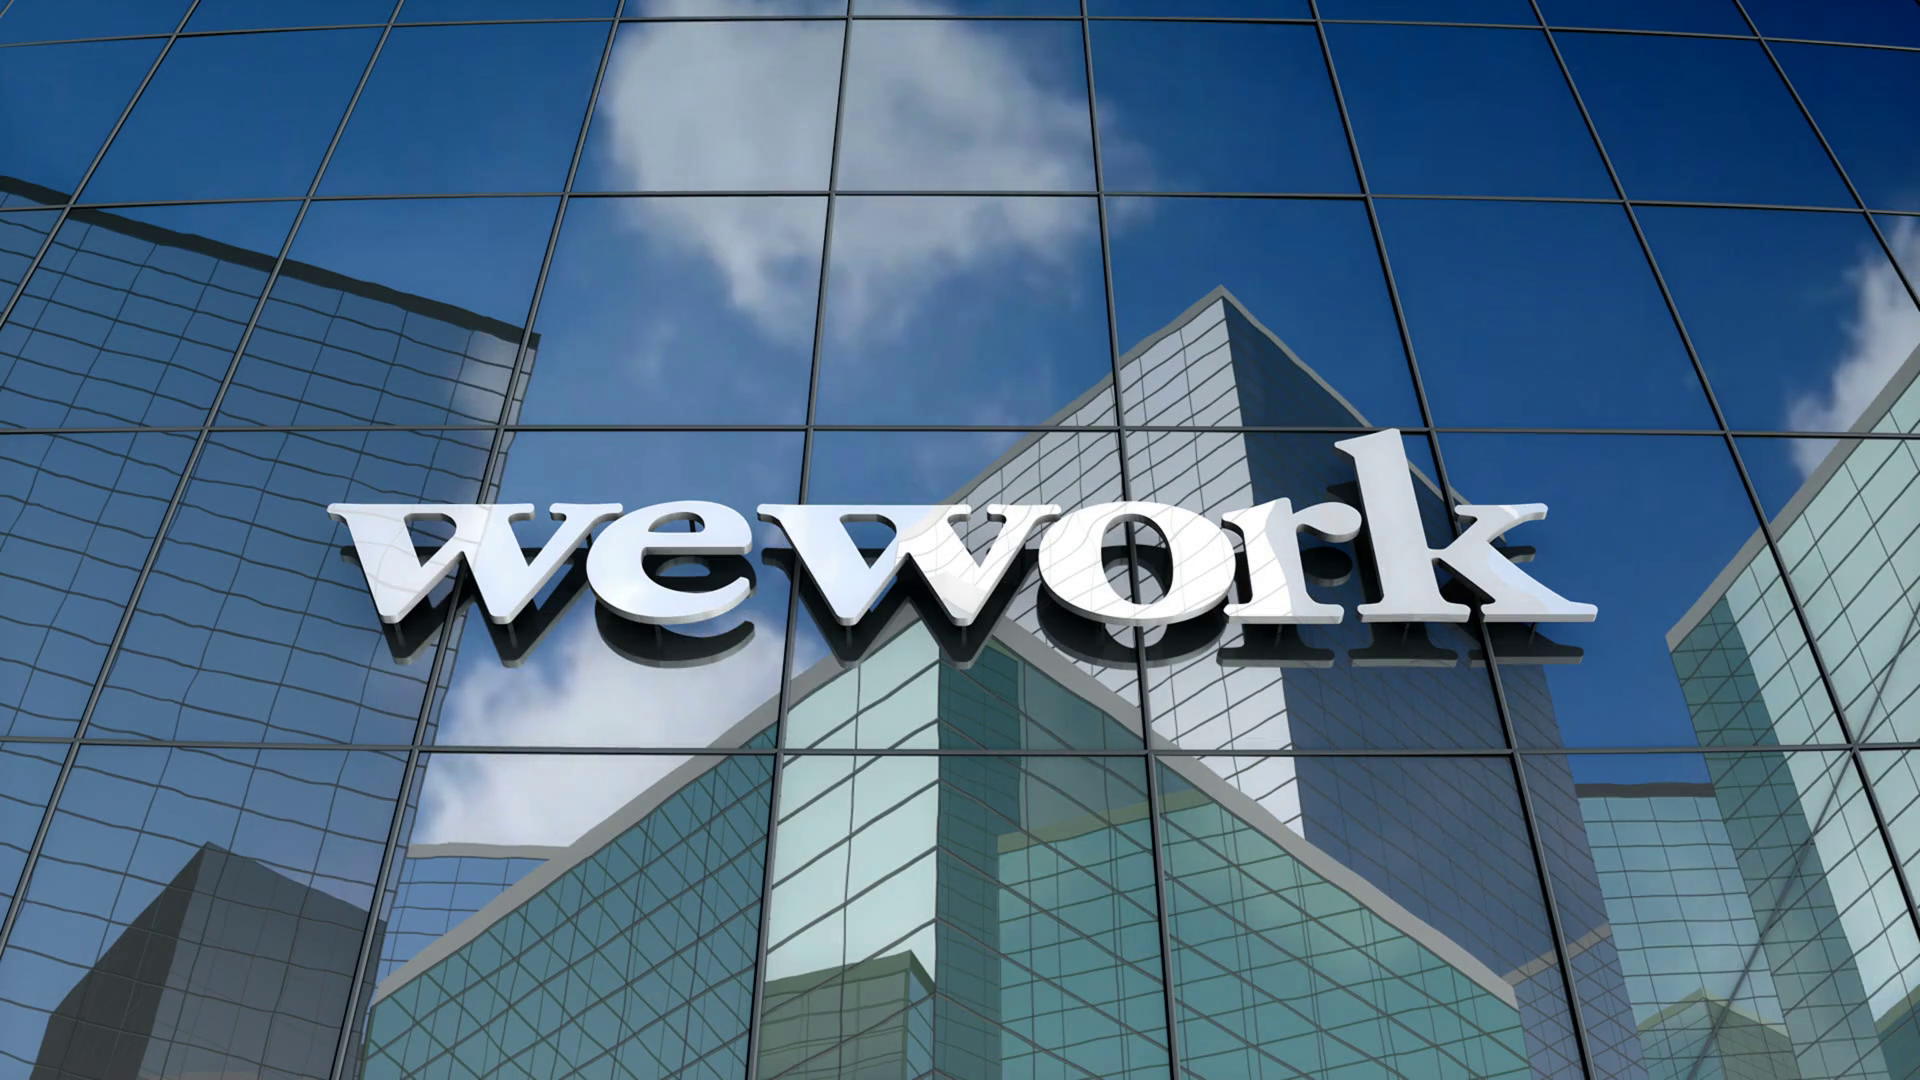 videoblocks-editorial-wework-logo-on-glass-building_haobgk5wf_thumbnail-full01.png